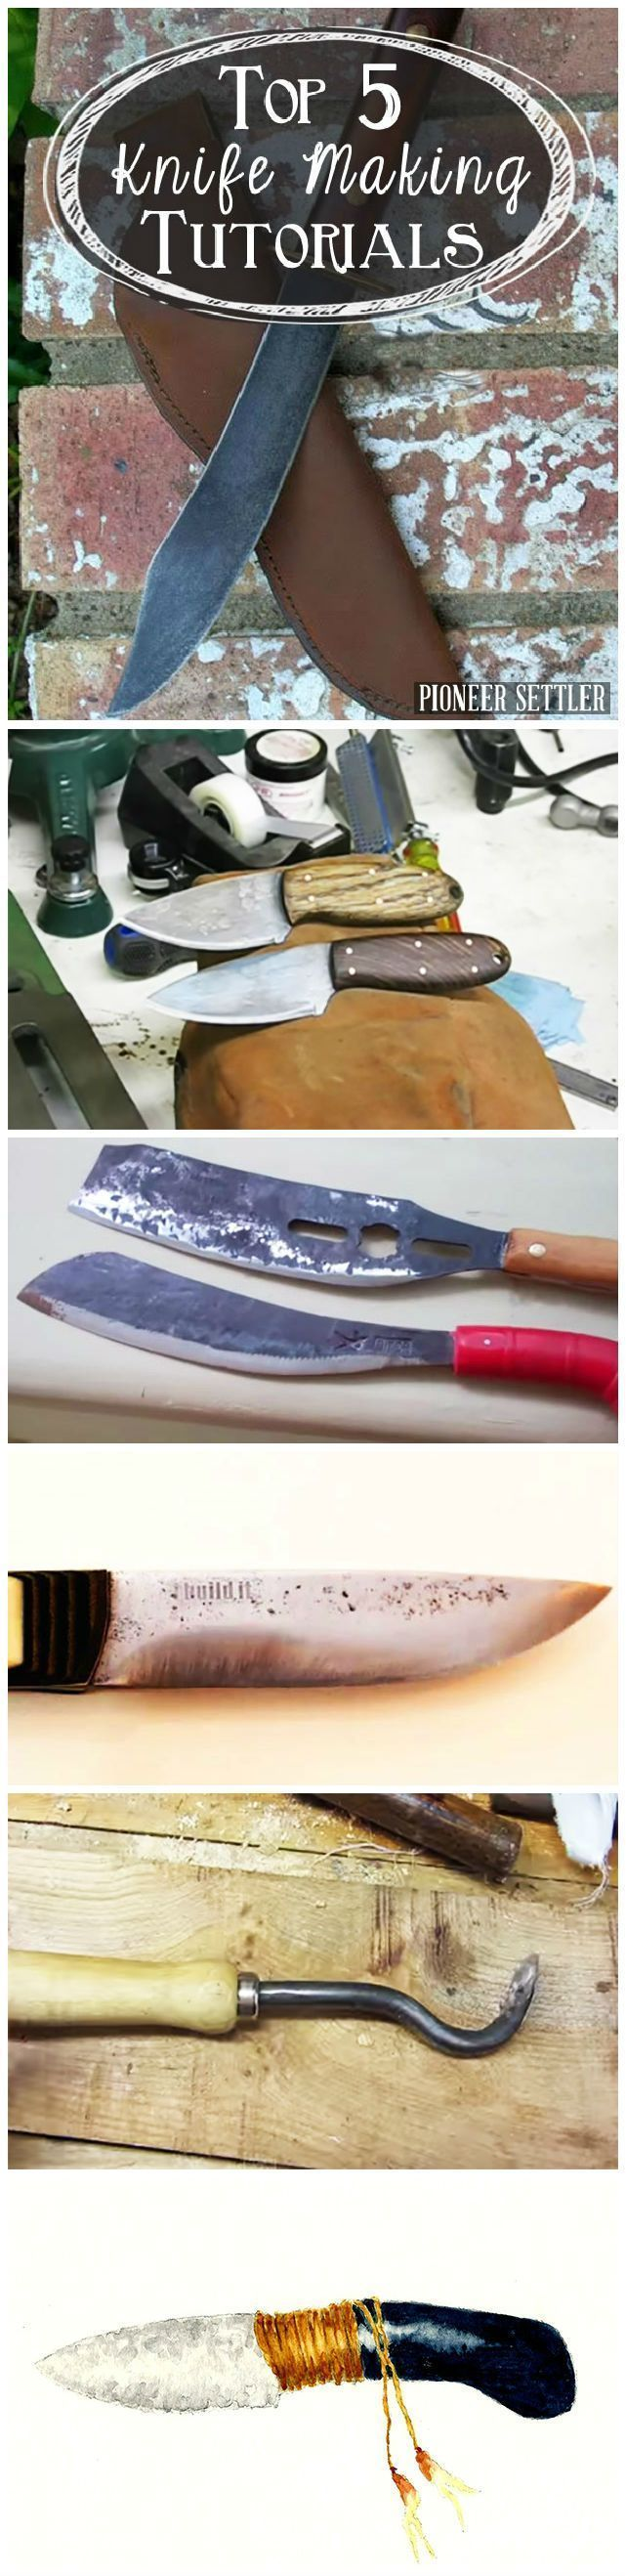 Top 5 Knife Making Tutorials | Blacksmithing & Forging | DIY Forge, Knife Making Projects and Anvil Crafting Tutorials by Pioneer Settler at http://pioneersettler.com/top-5-knife-making-tutorials/